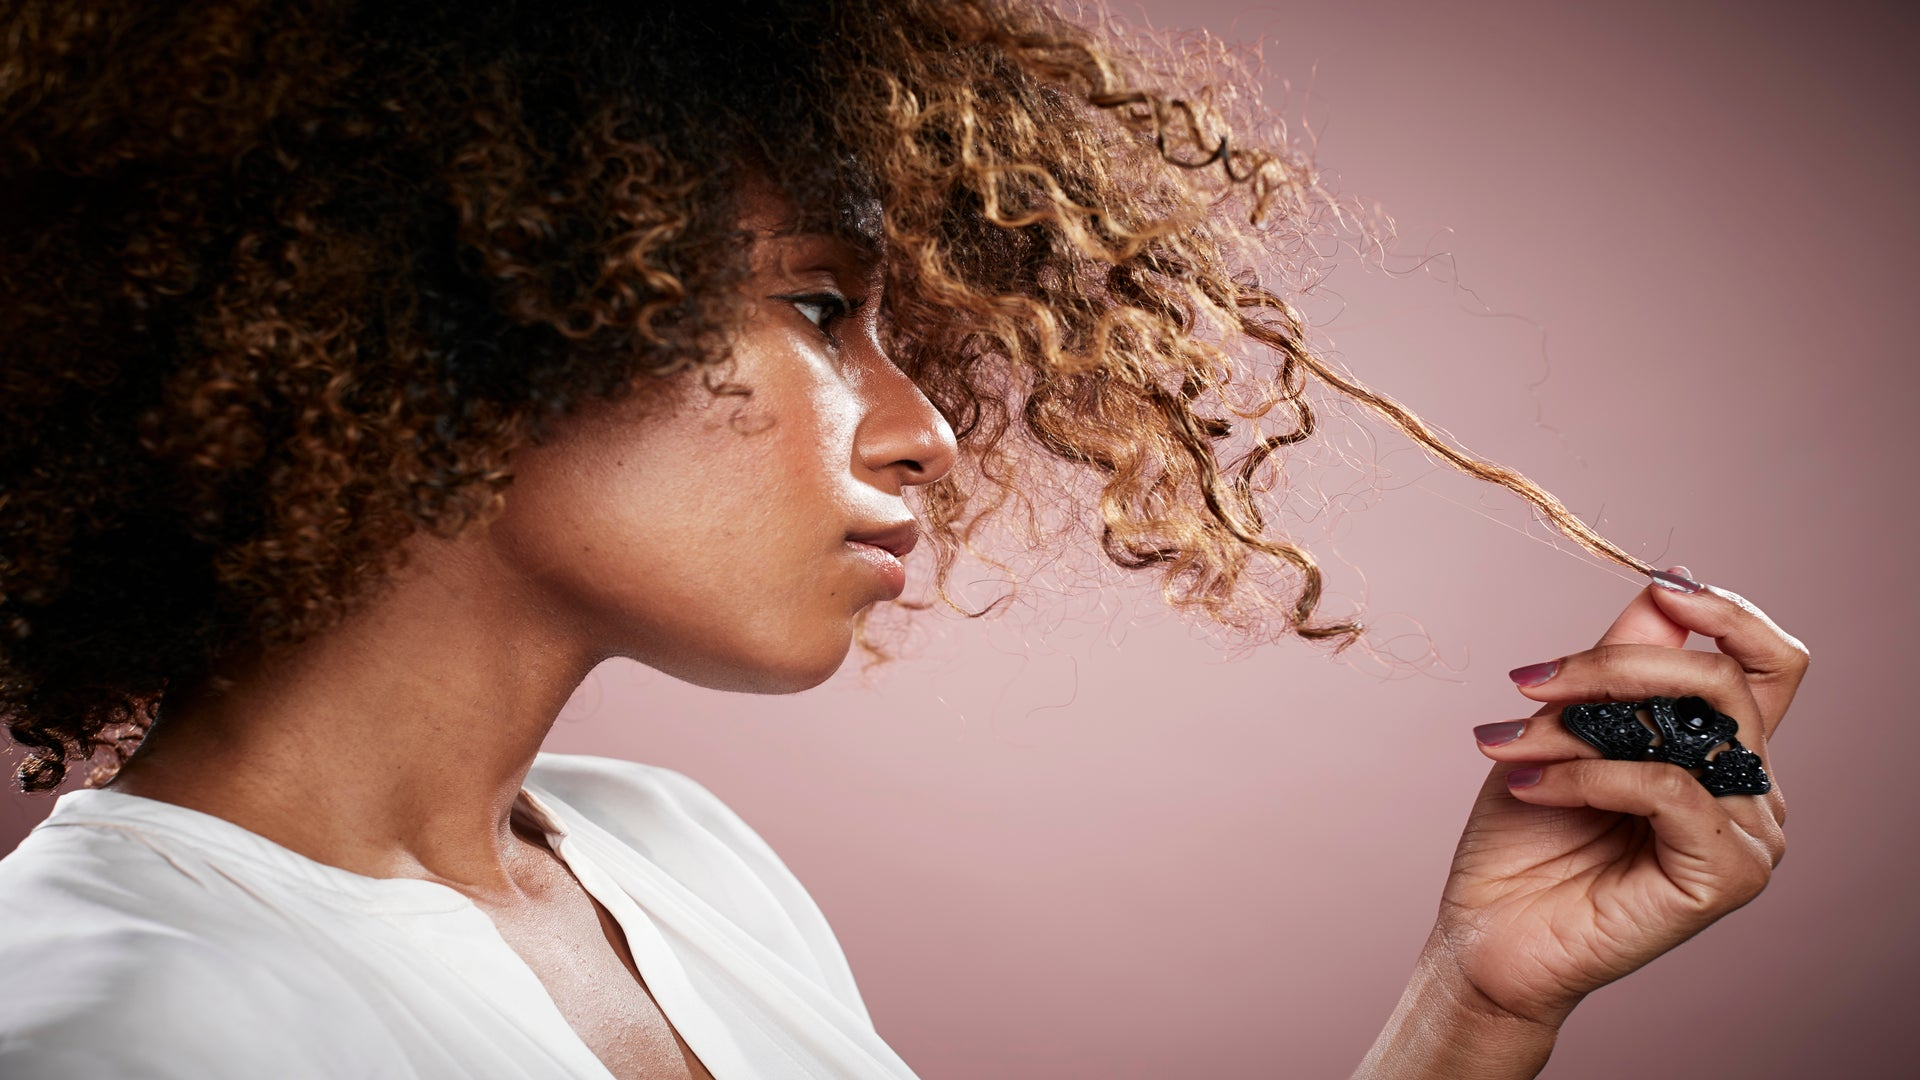 Here's Why You Should Rethink Your Current Haircare Routine